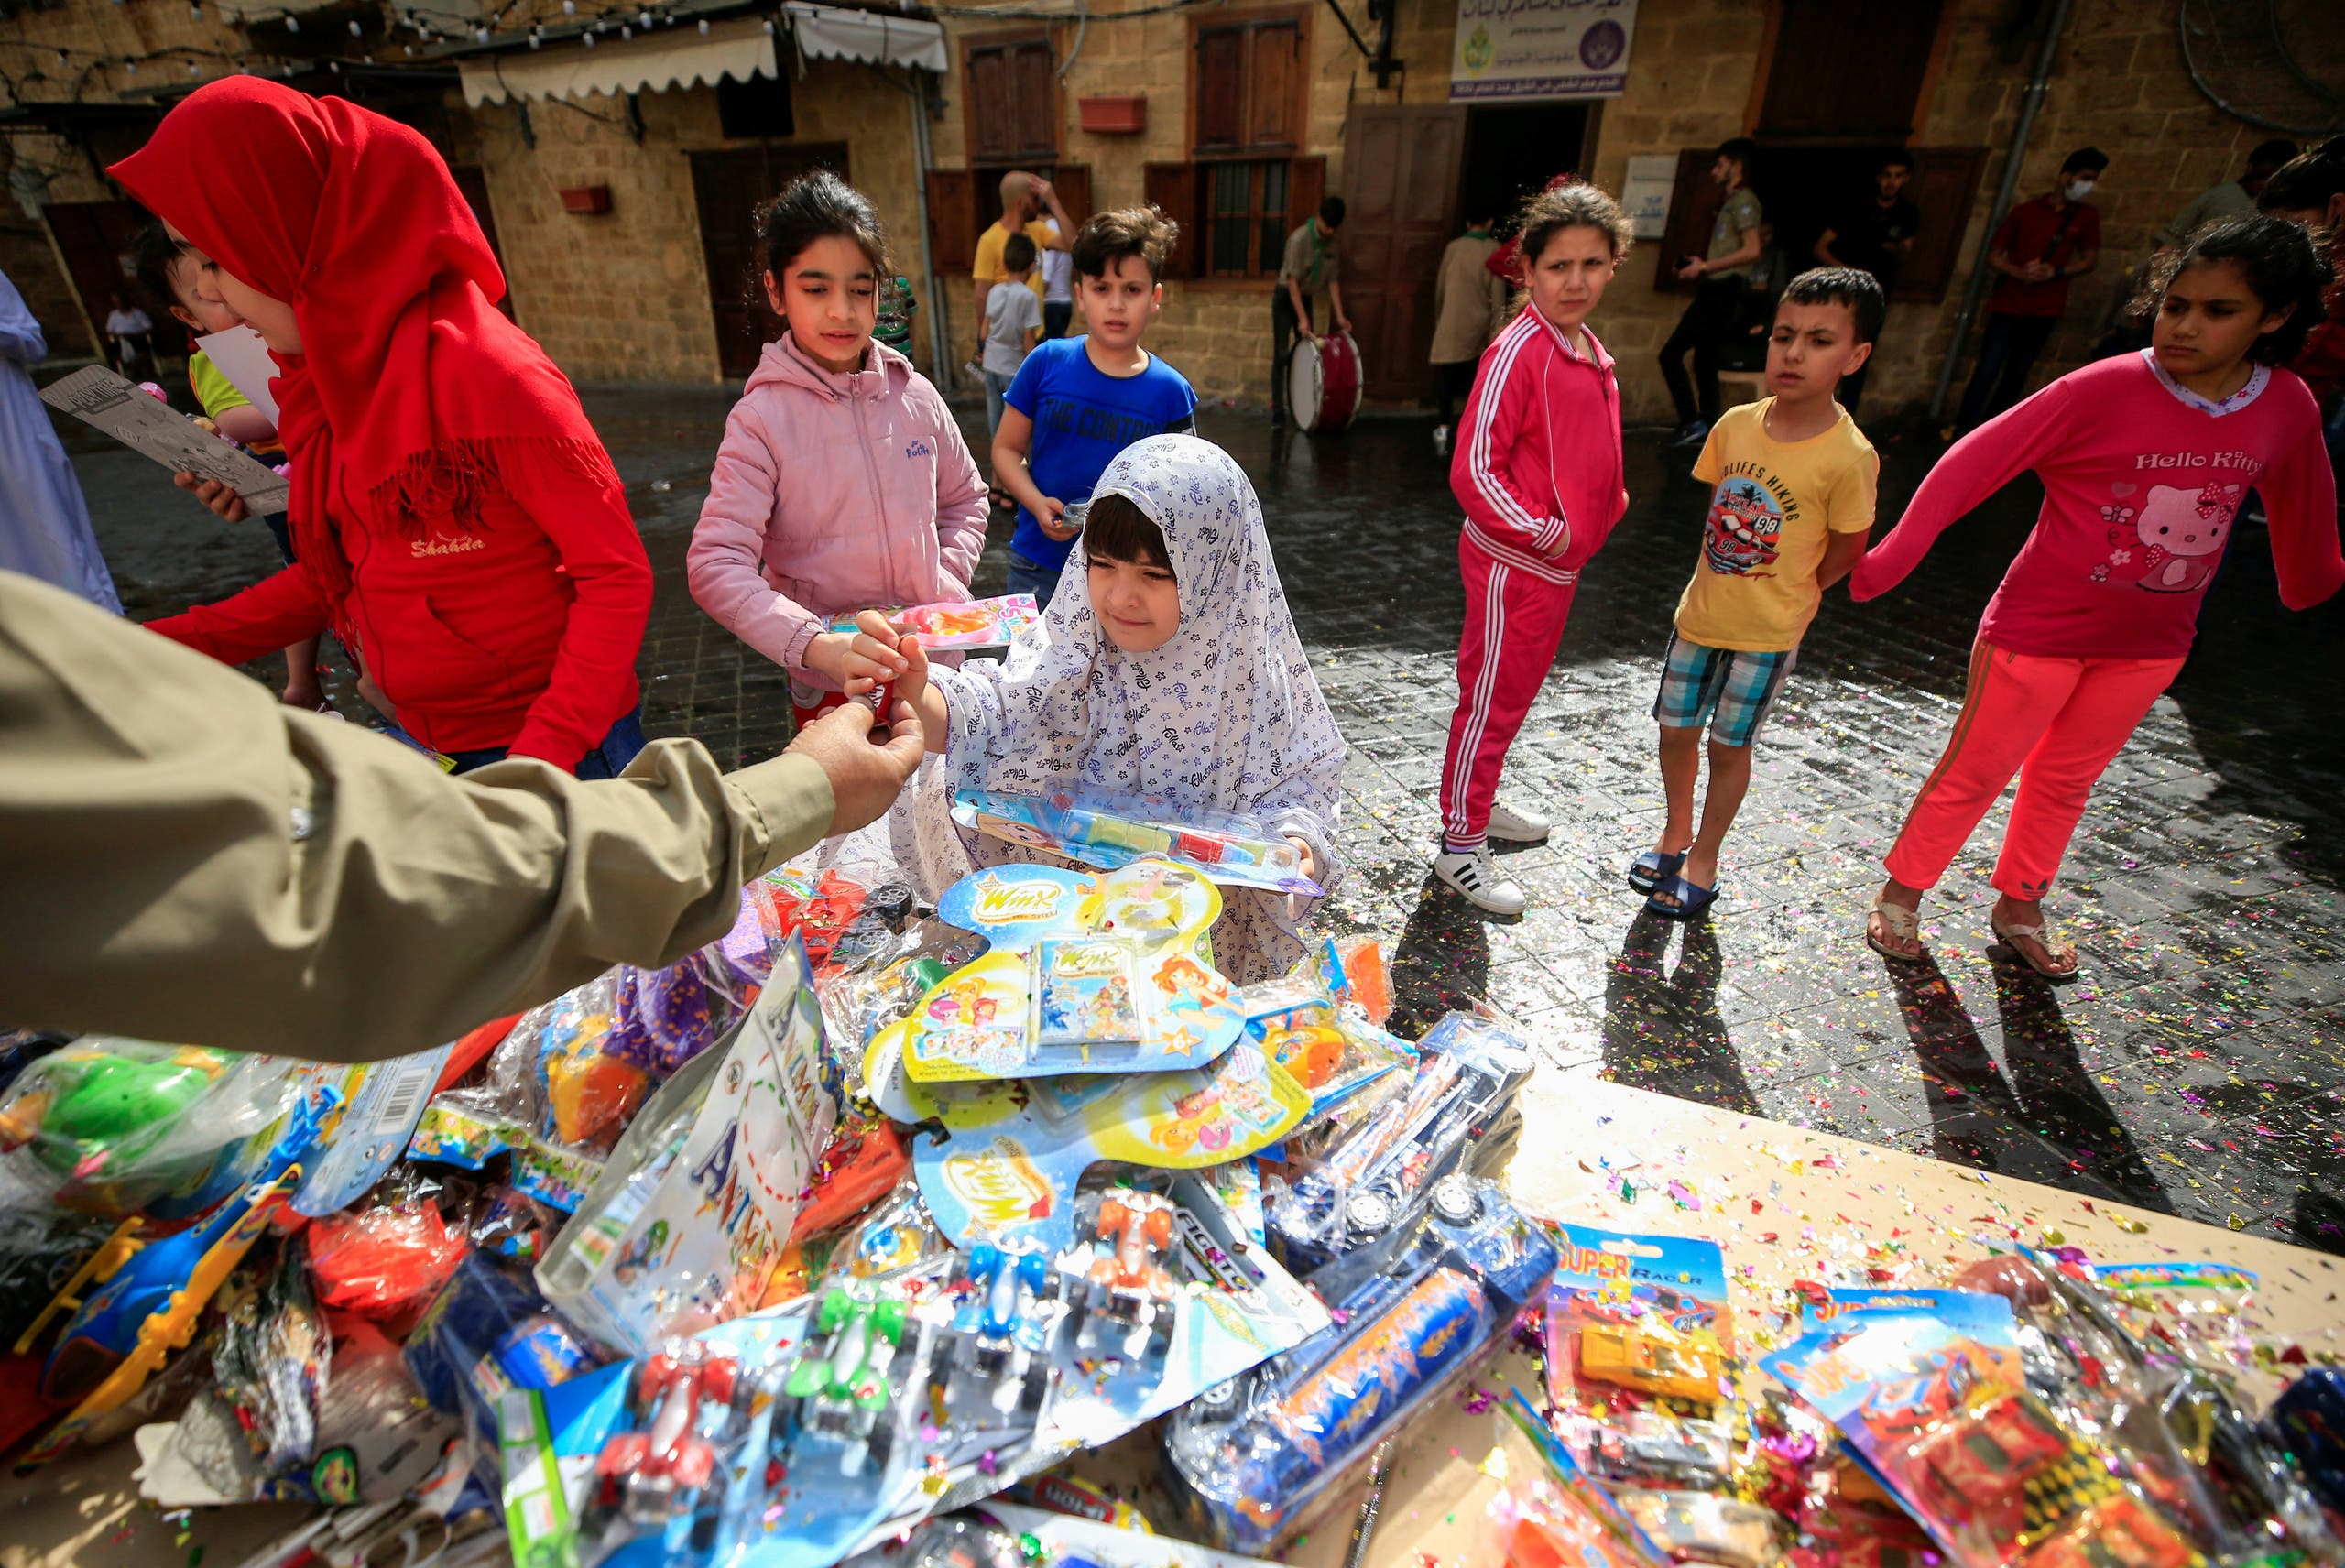 Children receive toys at a gift-giving event, on the first day of the Muslim holiday of Eid al-Fitr, amid concerns over the spread of the coronavirus disease (COVID-19), in the port city of Sidon, southern Lebanon, May 24, 2020. (Reuters)